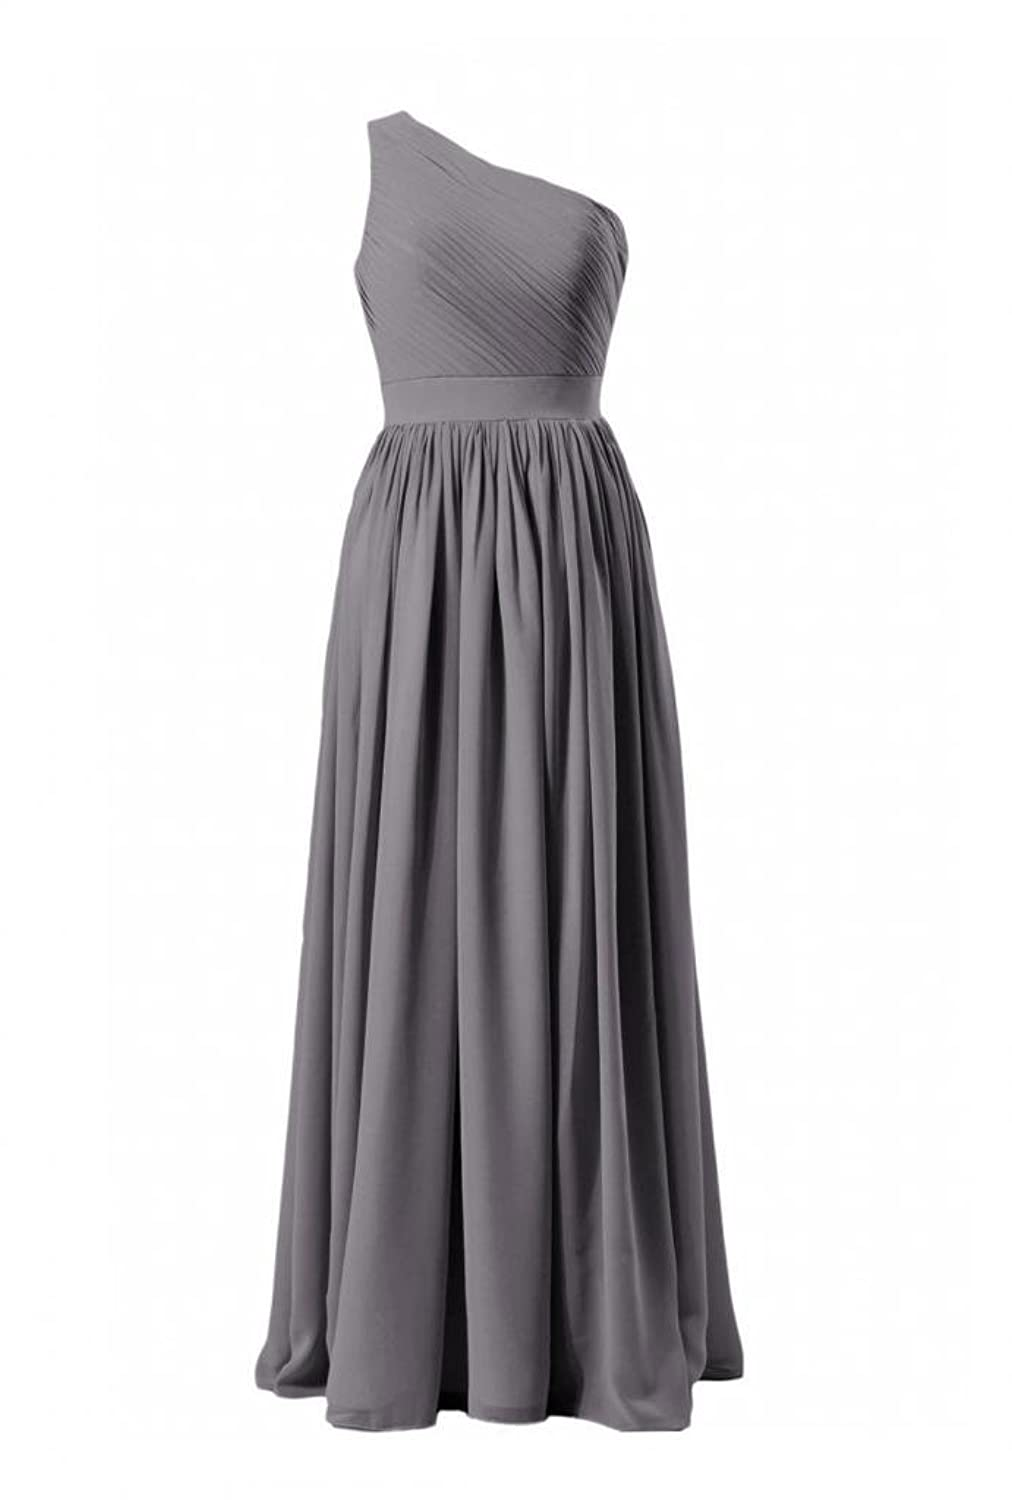 DaisyFormals Long One-Shoulder Bridesmaid Dress Vintage Chiffon Bridal Party Dress(BM122)